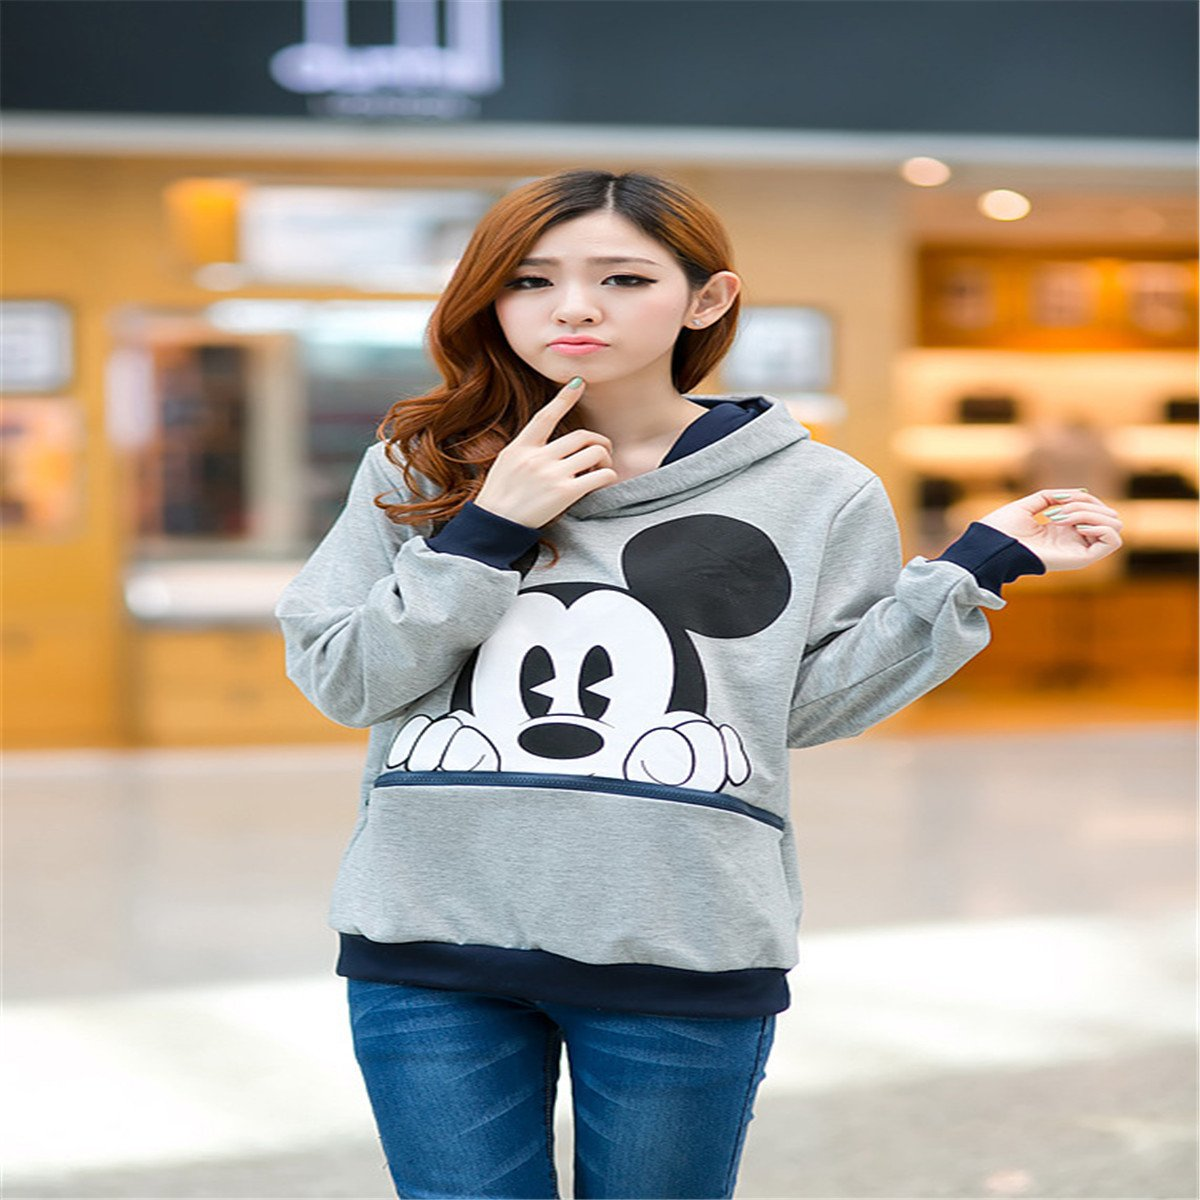 8c3e6efa11db8 reine à la mode- Fashion Sweats à capuche de Femme Casual Mickey Mouse (S,  Gris): Amazon.fr: Vêtements et accessoires